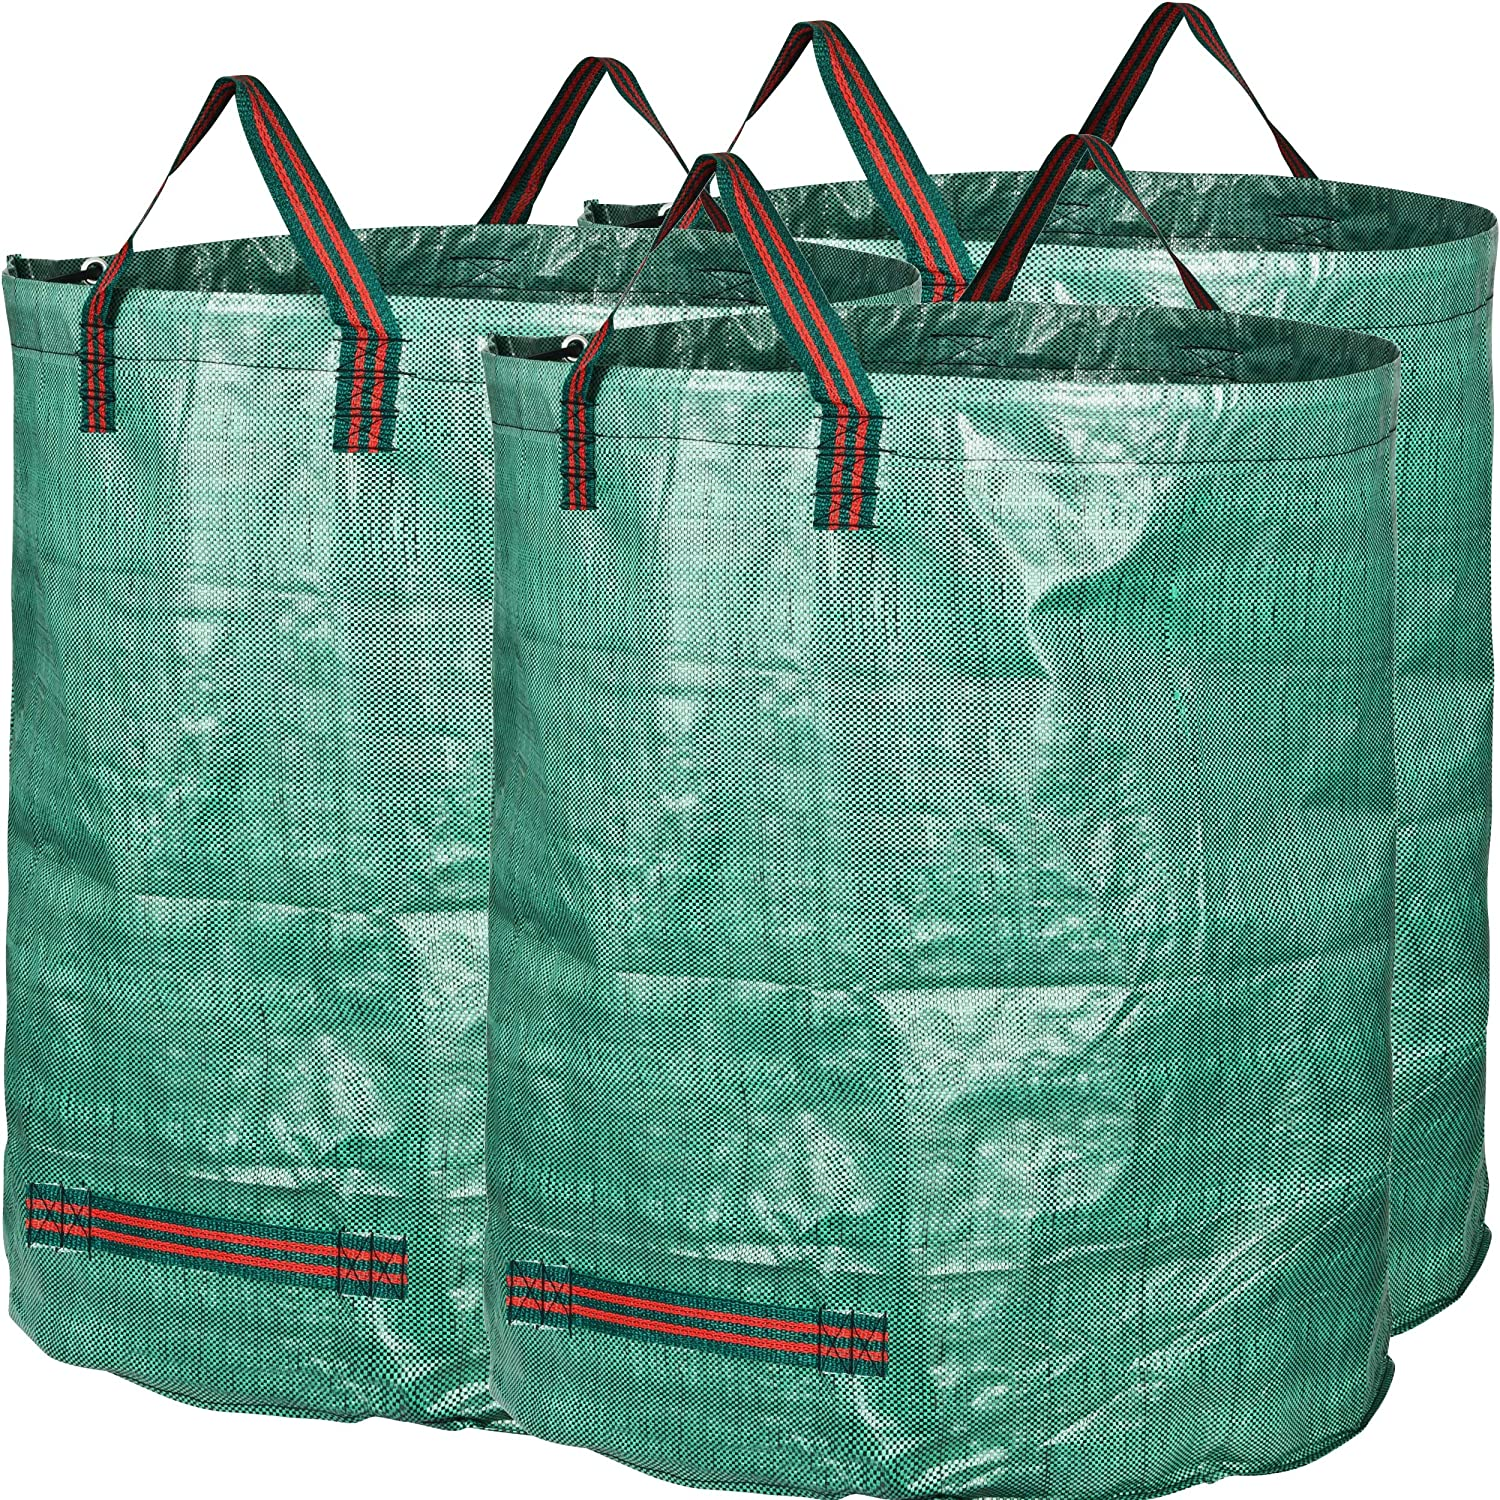 GardenMate pack of 3 large 300L PROFESSIONAL garden waste bags (H84 cm, D67 cm)